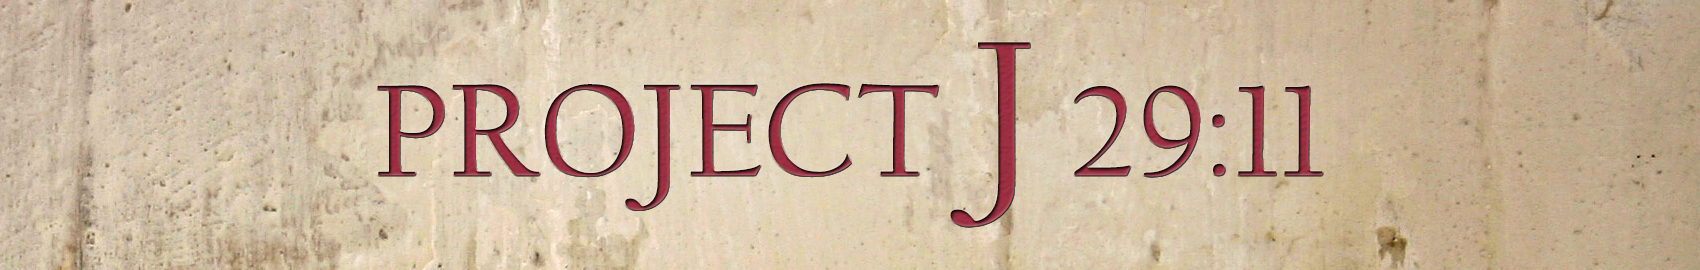 Project J 2911 Banner 2